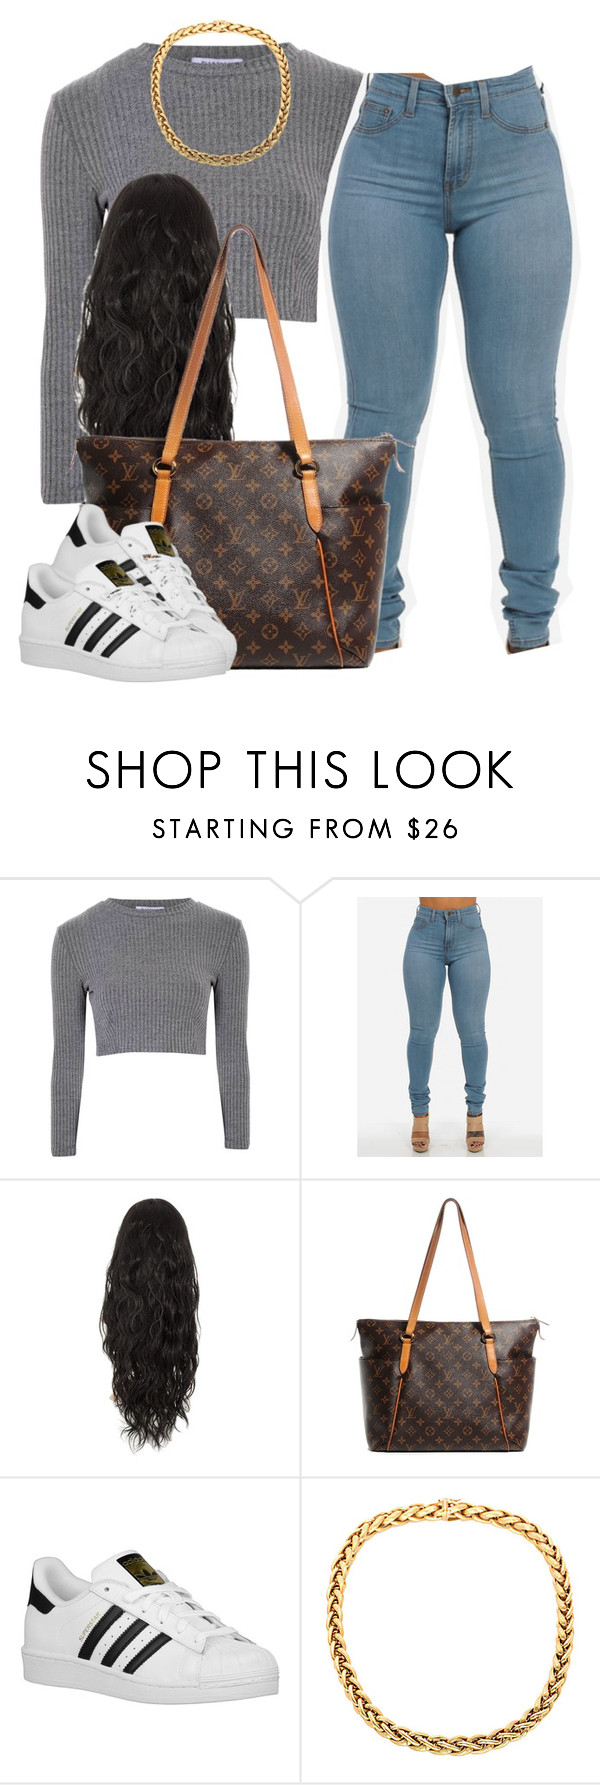 """."" by trillest-queen ❤ liked on Polyvore featuring Glamorous, Louis Vuitton and adidas Originals"